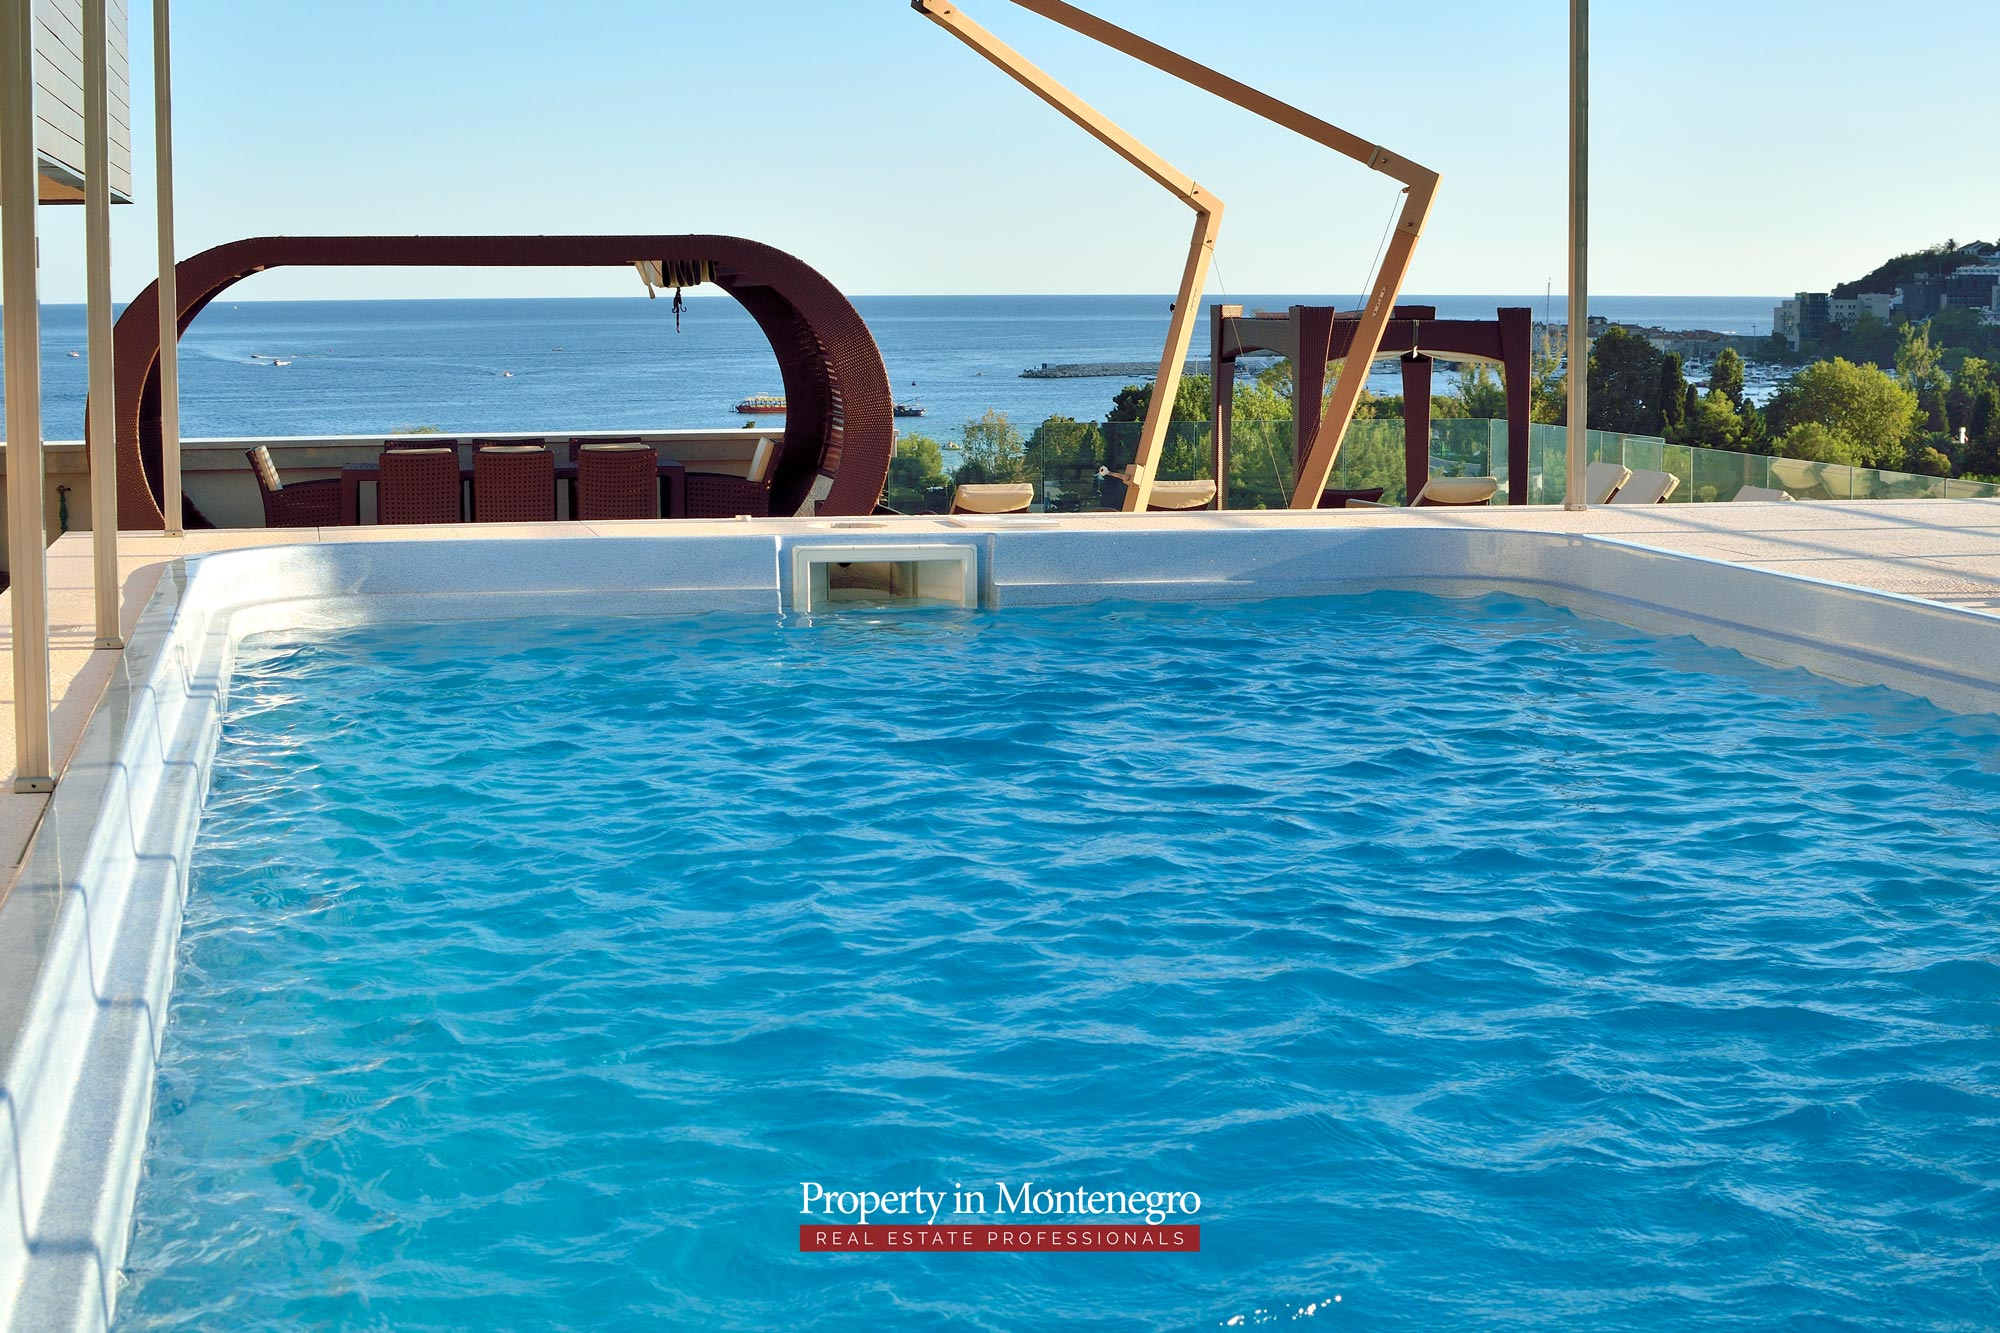 luxury-penthouse-with-panoramic-view-and-swimming-pool-for-sale-in-Budva-Montenegro (6).jpg